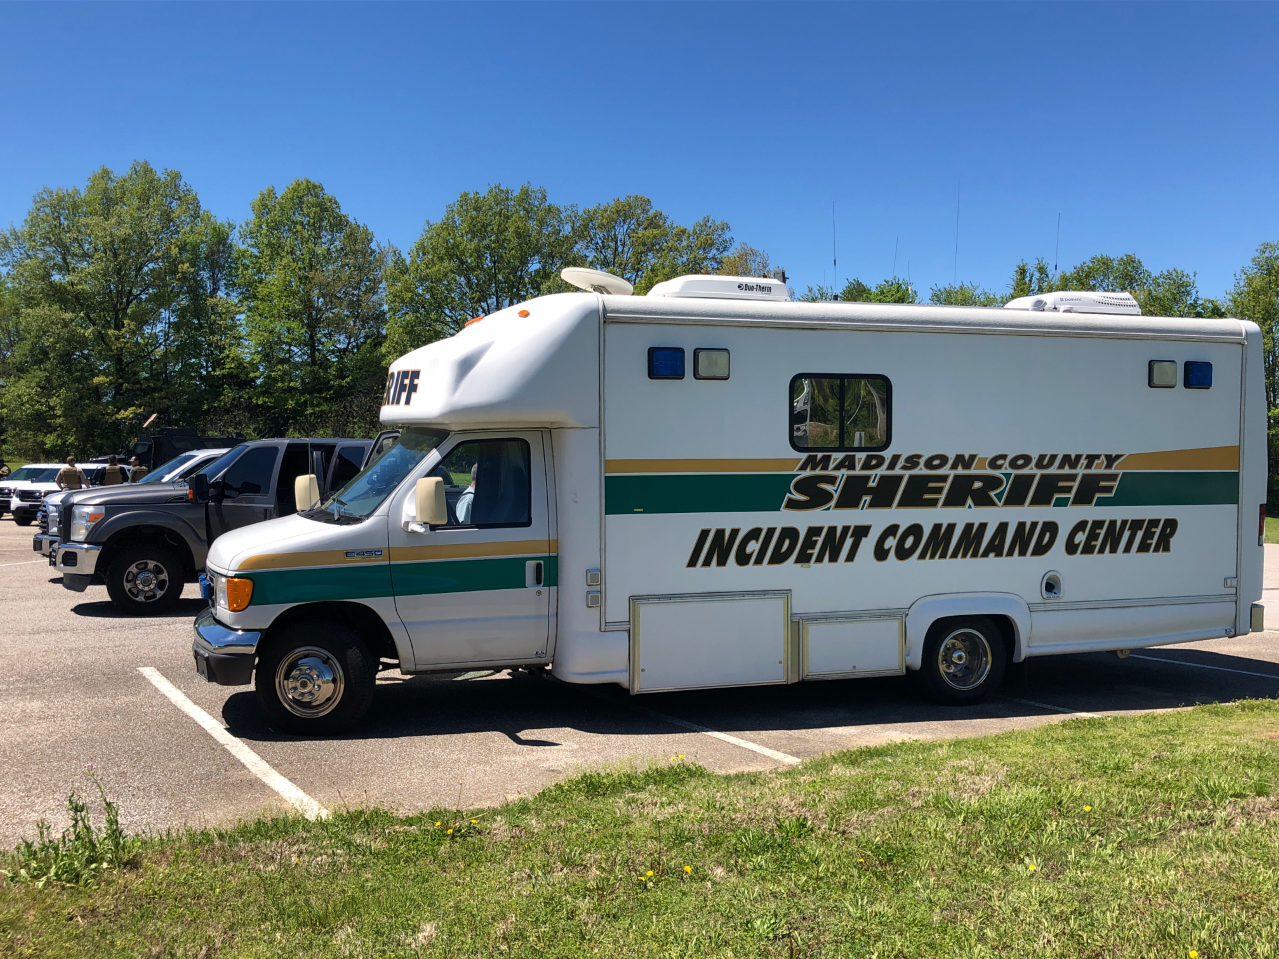 The Madison County Sheriff mobile Incident Command Center is on scene at the initial staging site at Friendship Elementary School in response to an allegedly armed suspect barricaded in a Friendship residence Saturday at around 12:45 p.m.